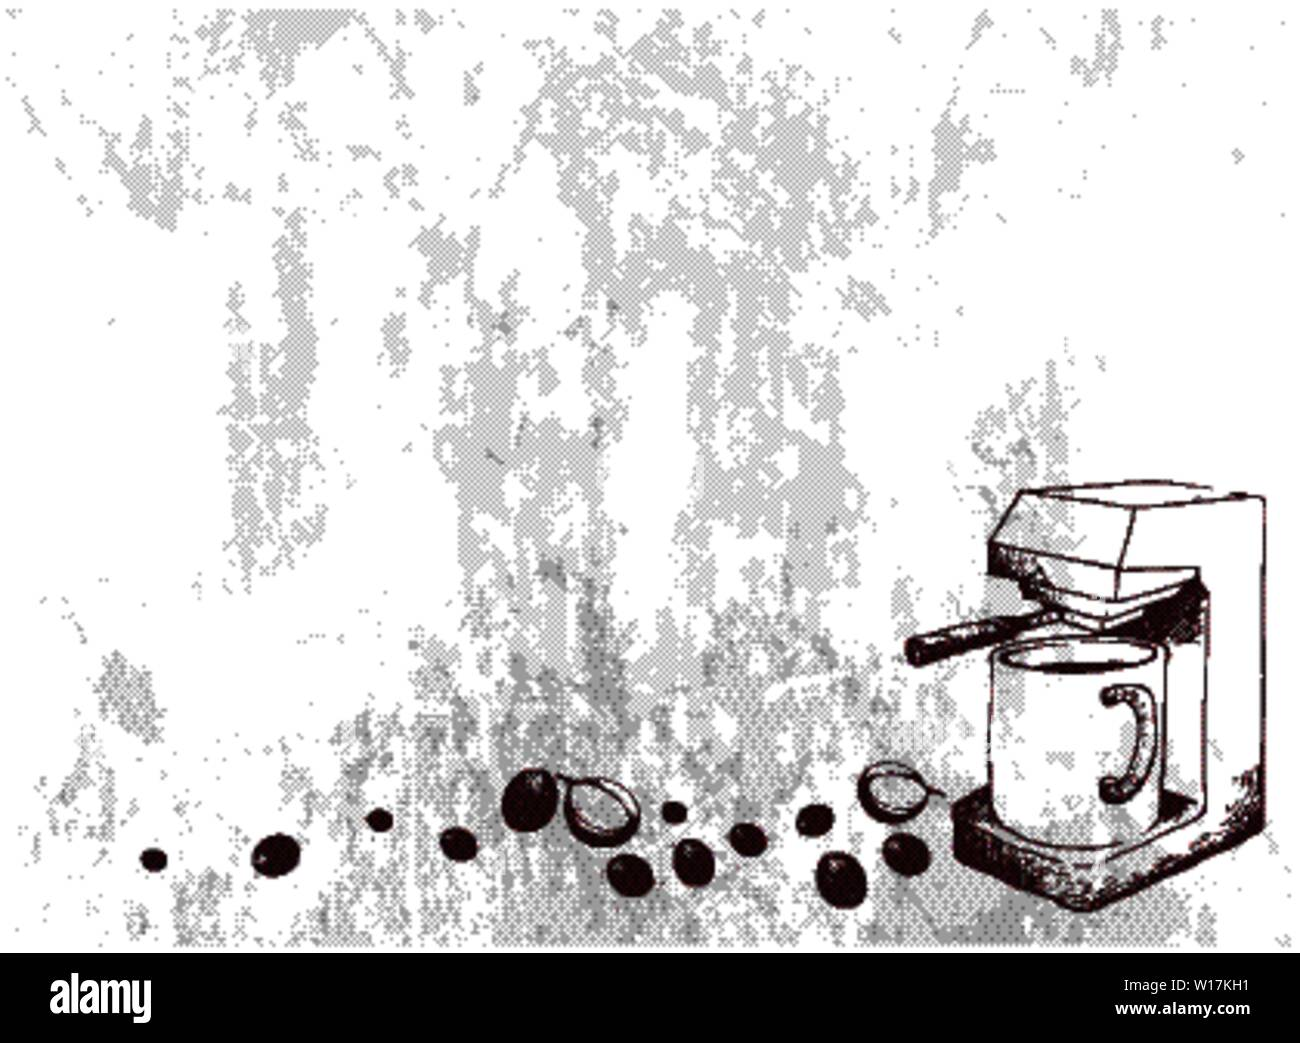 Illustration Hand Drawn Sketch of Coffee Beans with Espresso Machine. An Appliance Used to Brew Coffee. Stock Vector